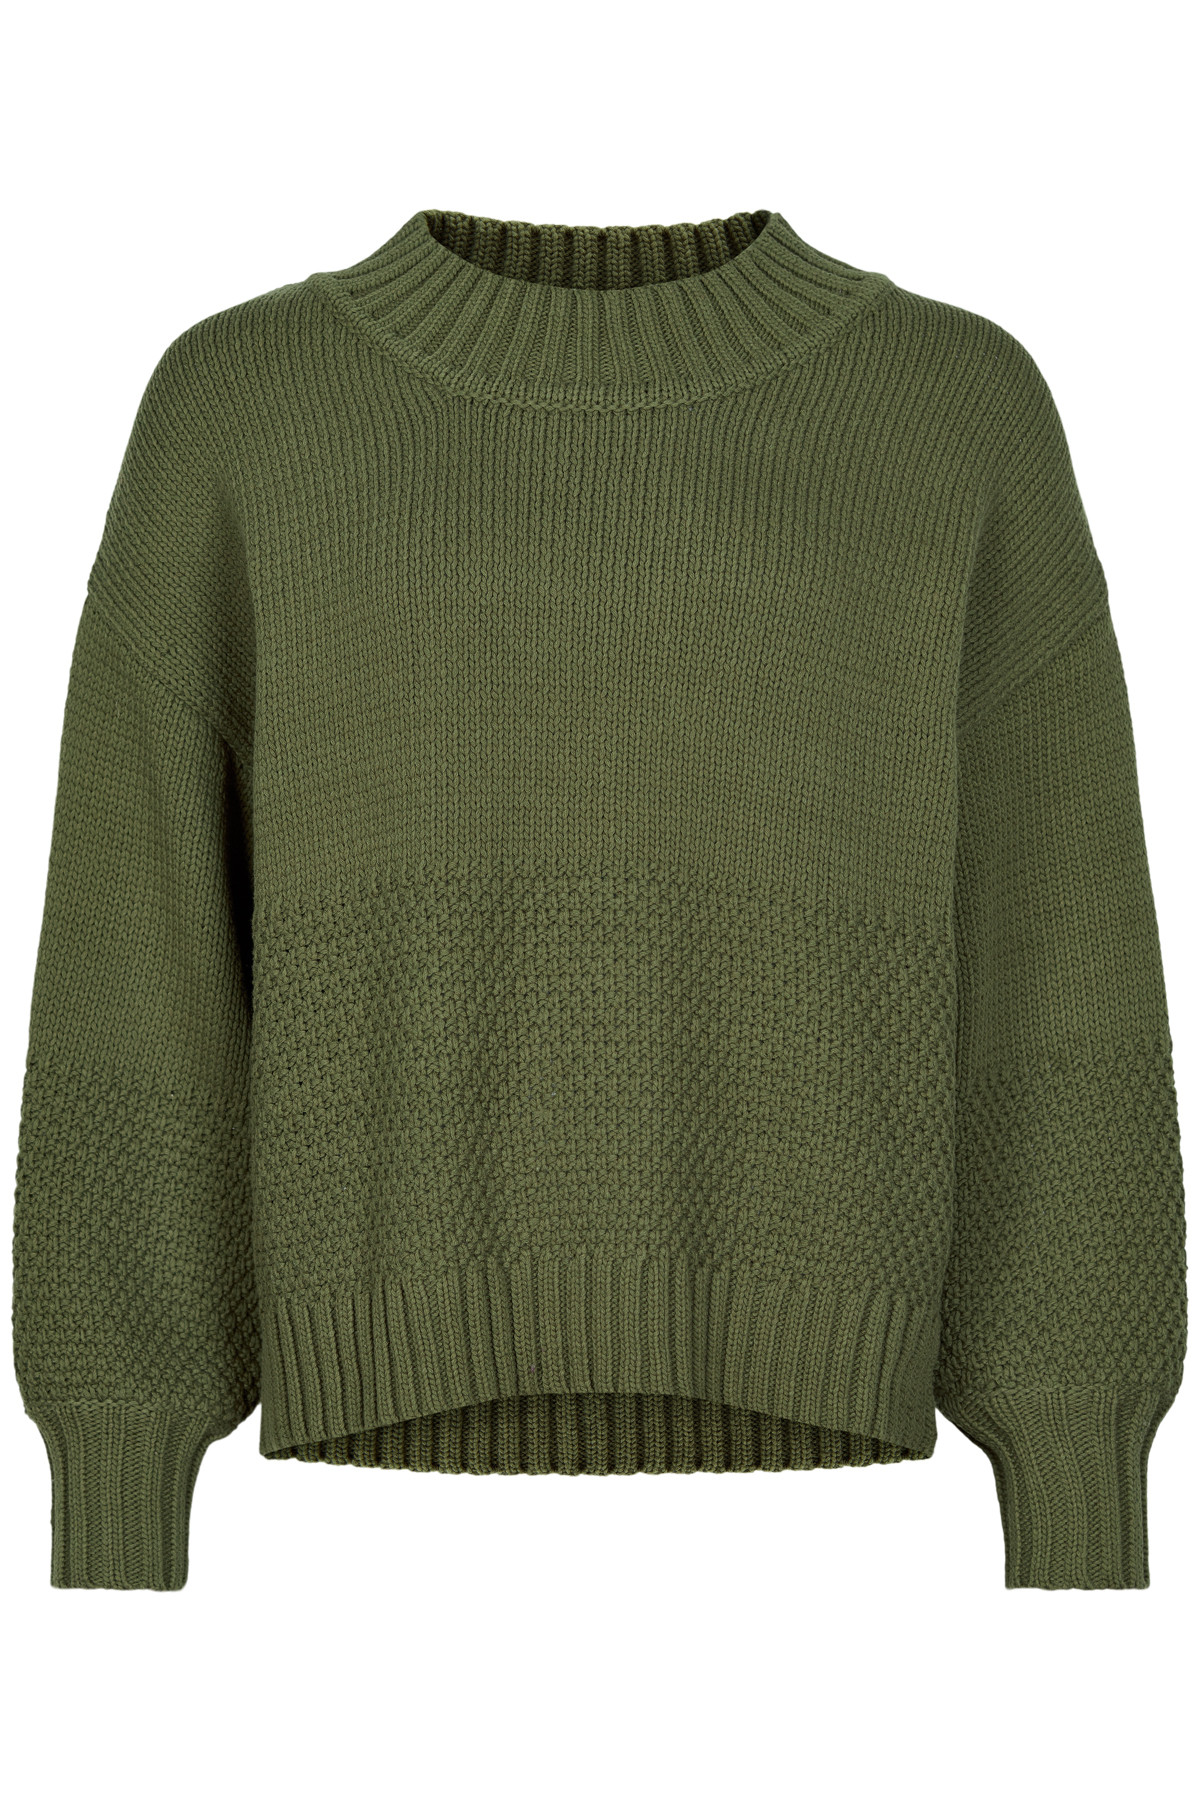 Image of   AND LESS ALANIESE PULLOVER 5120203 I (Ivy Green, XL)